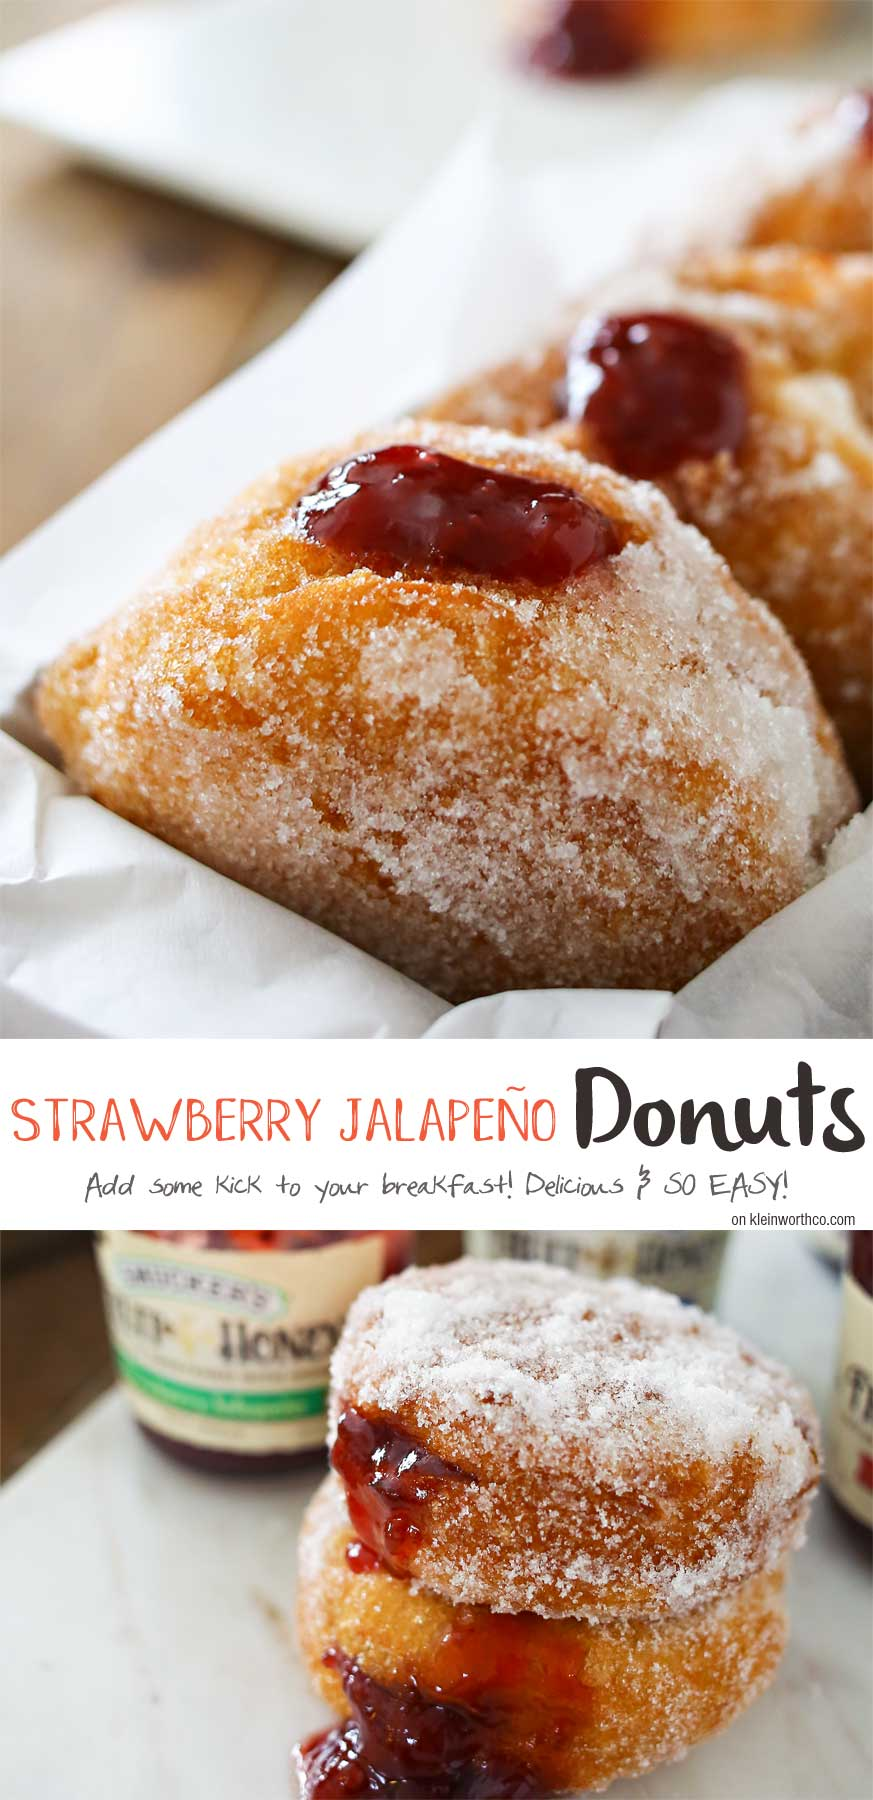 Easy Strawberry Jalapeño Donuts - delicious homemade donuts